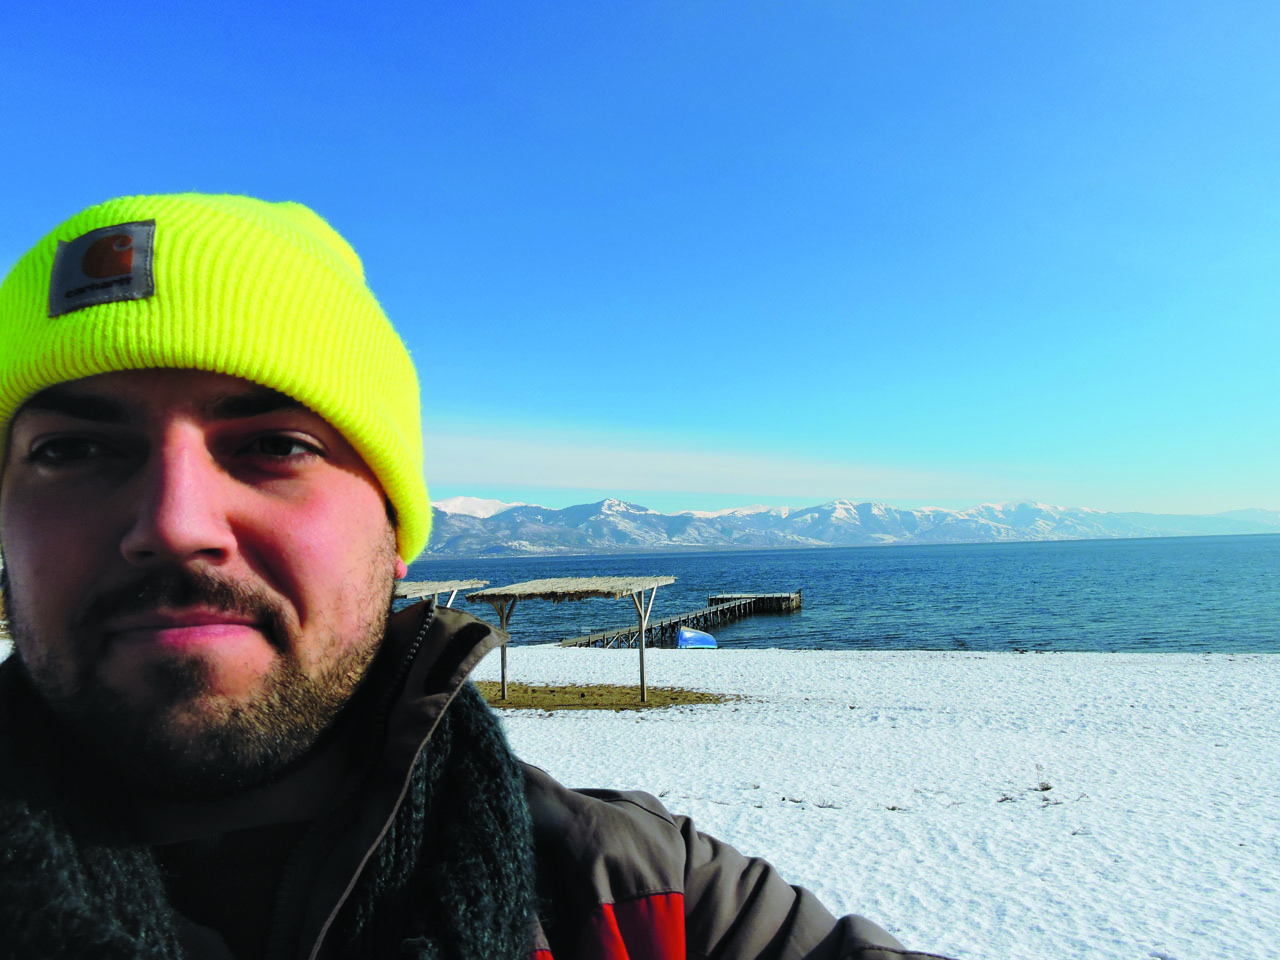 His first career: Hotelier in Macedonia. Beach included.